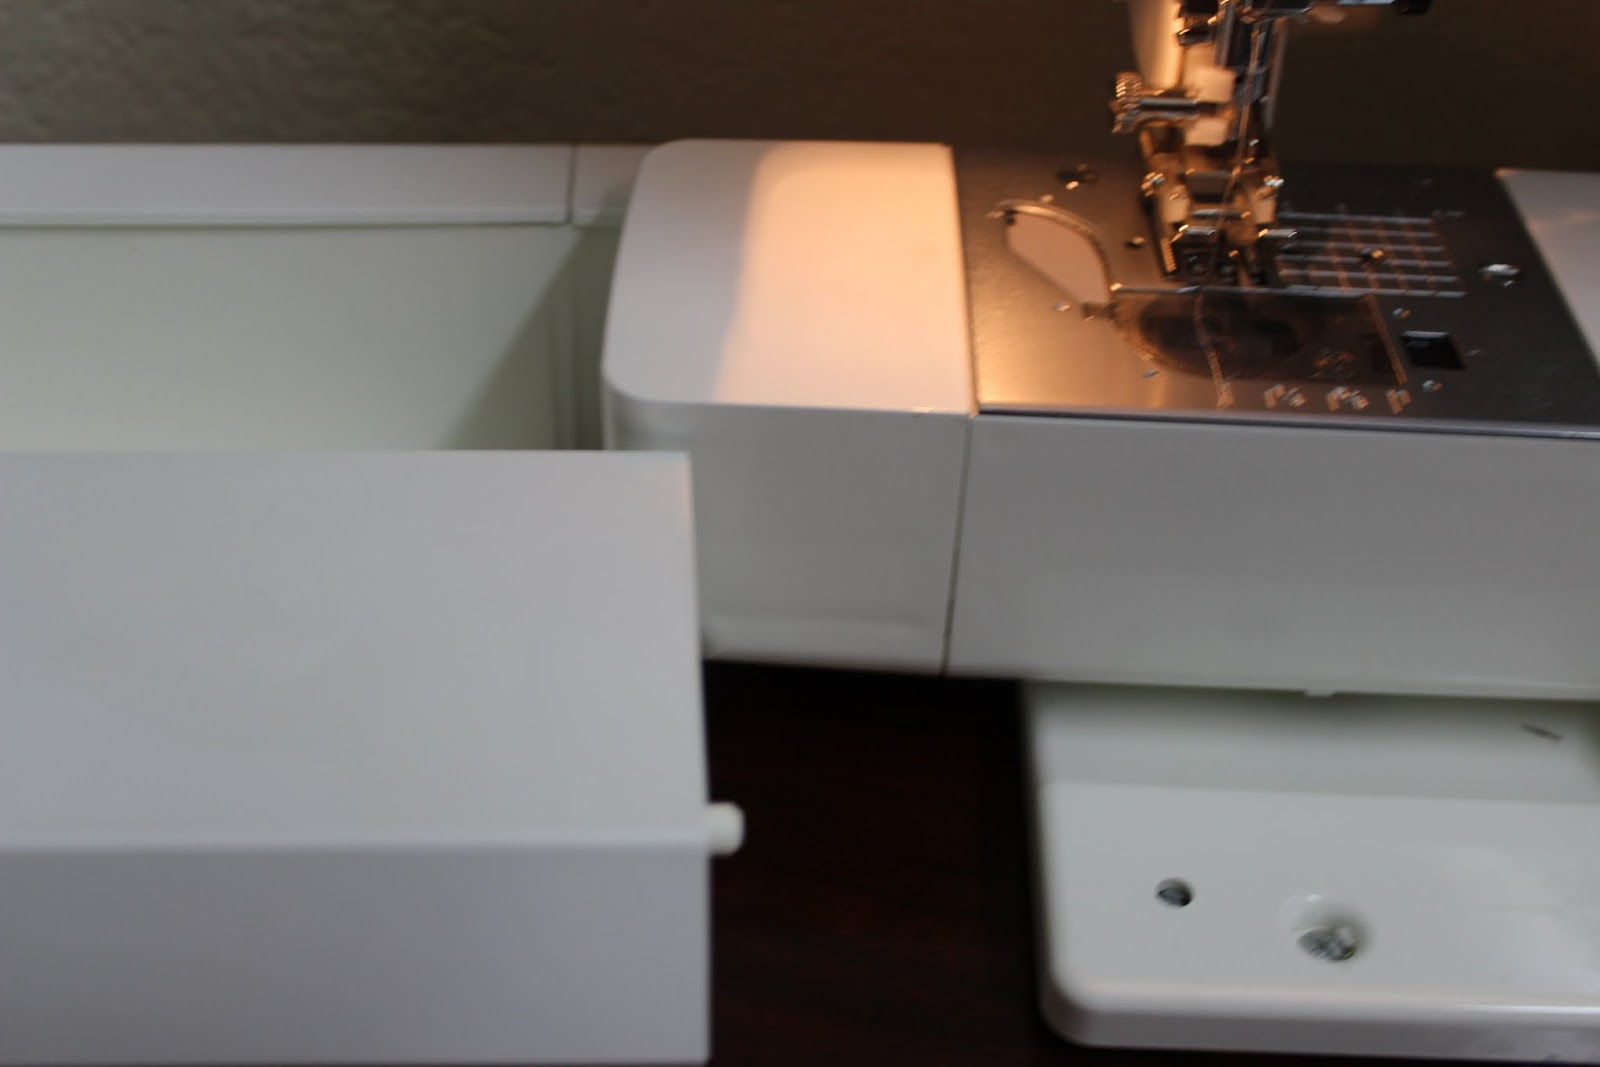 Sewing Machine Setting For Hemming Pants